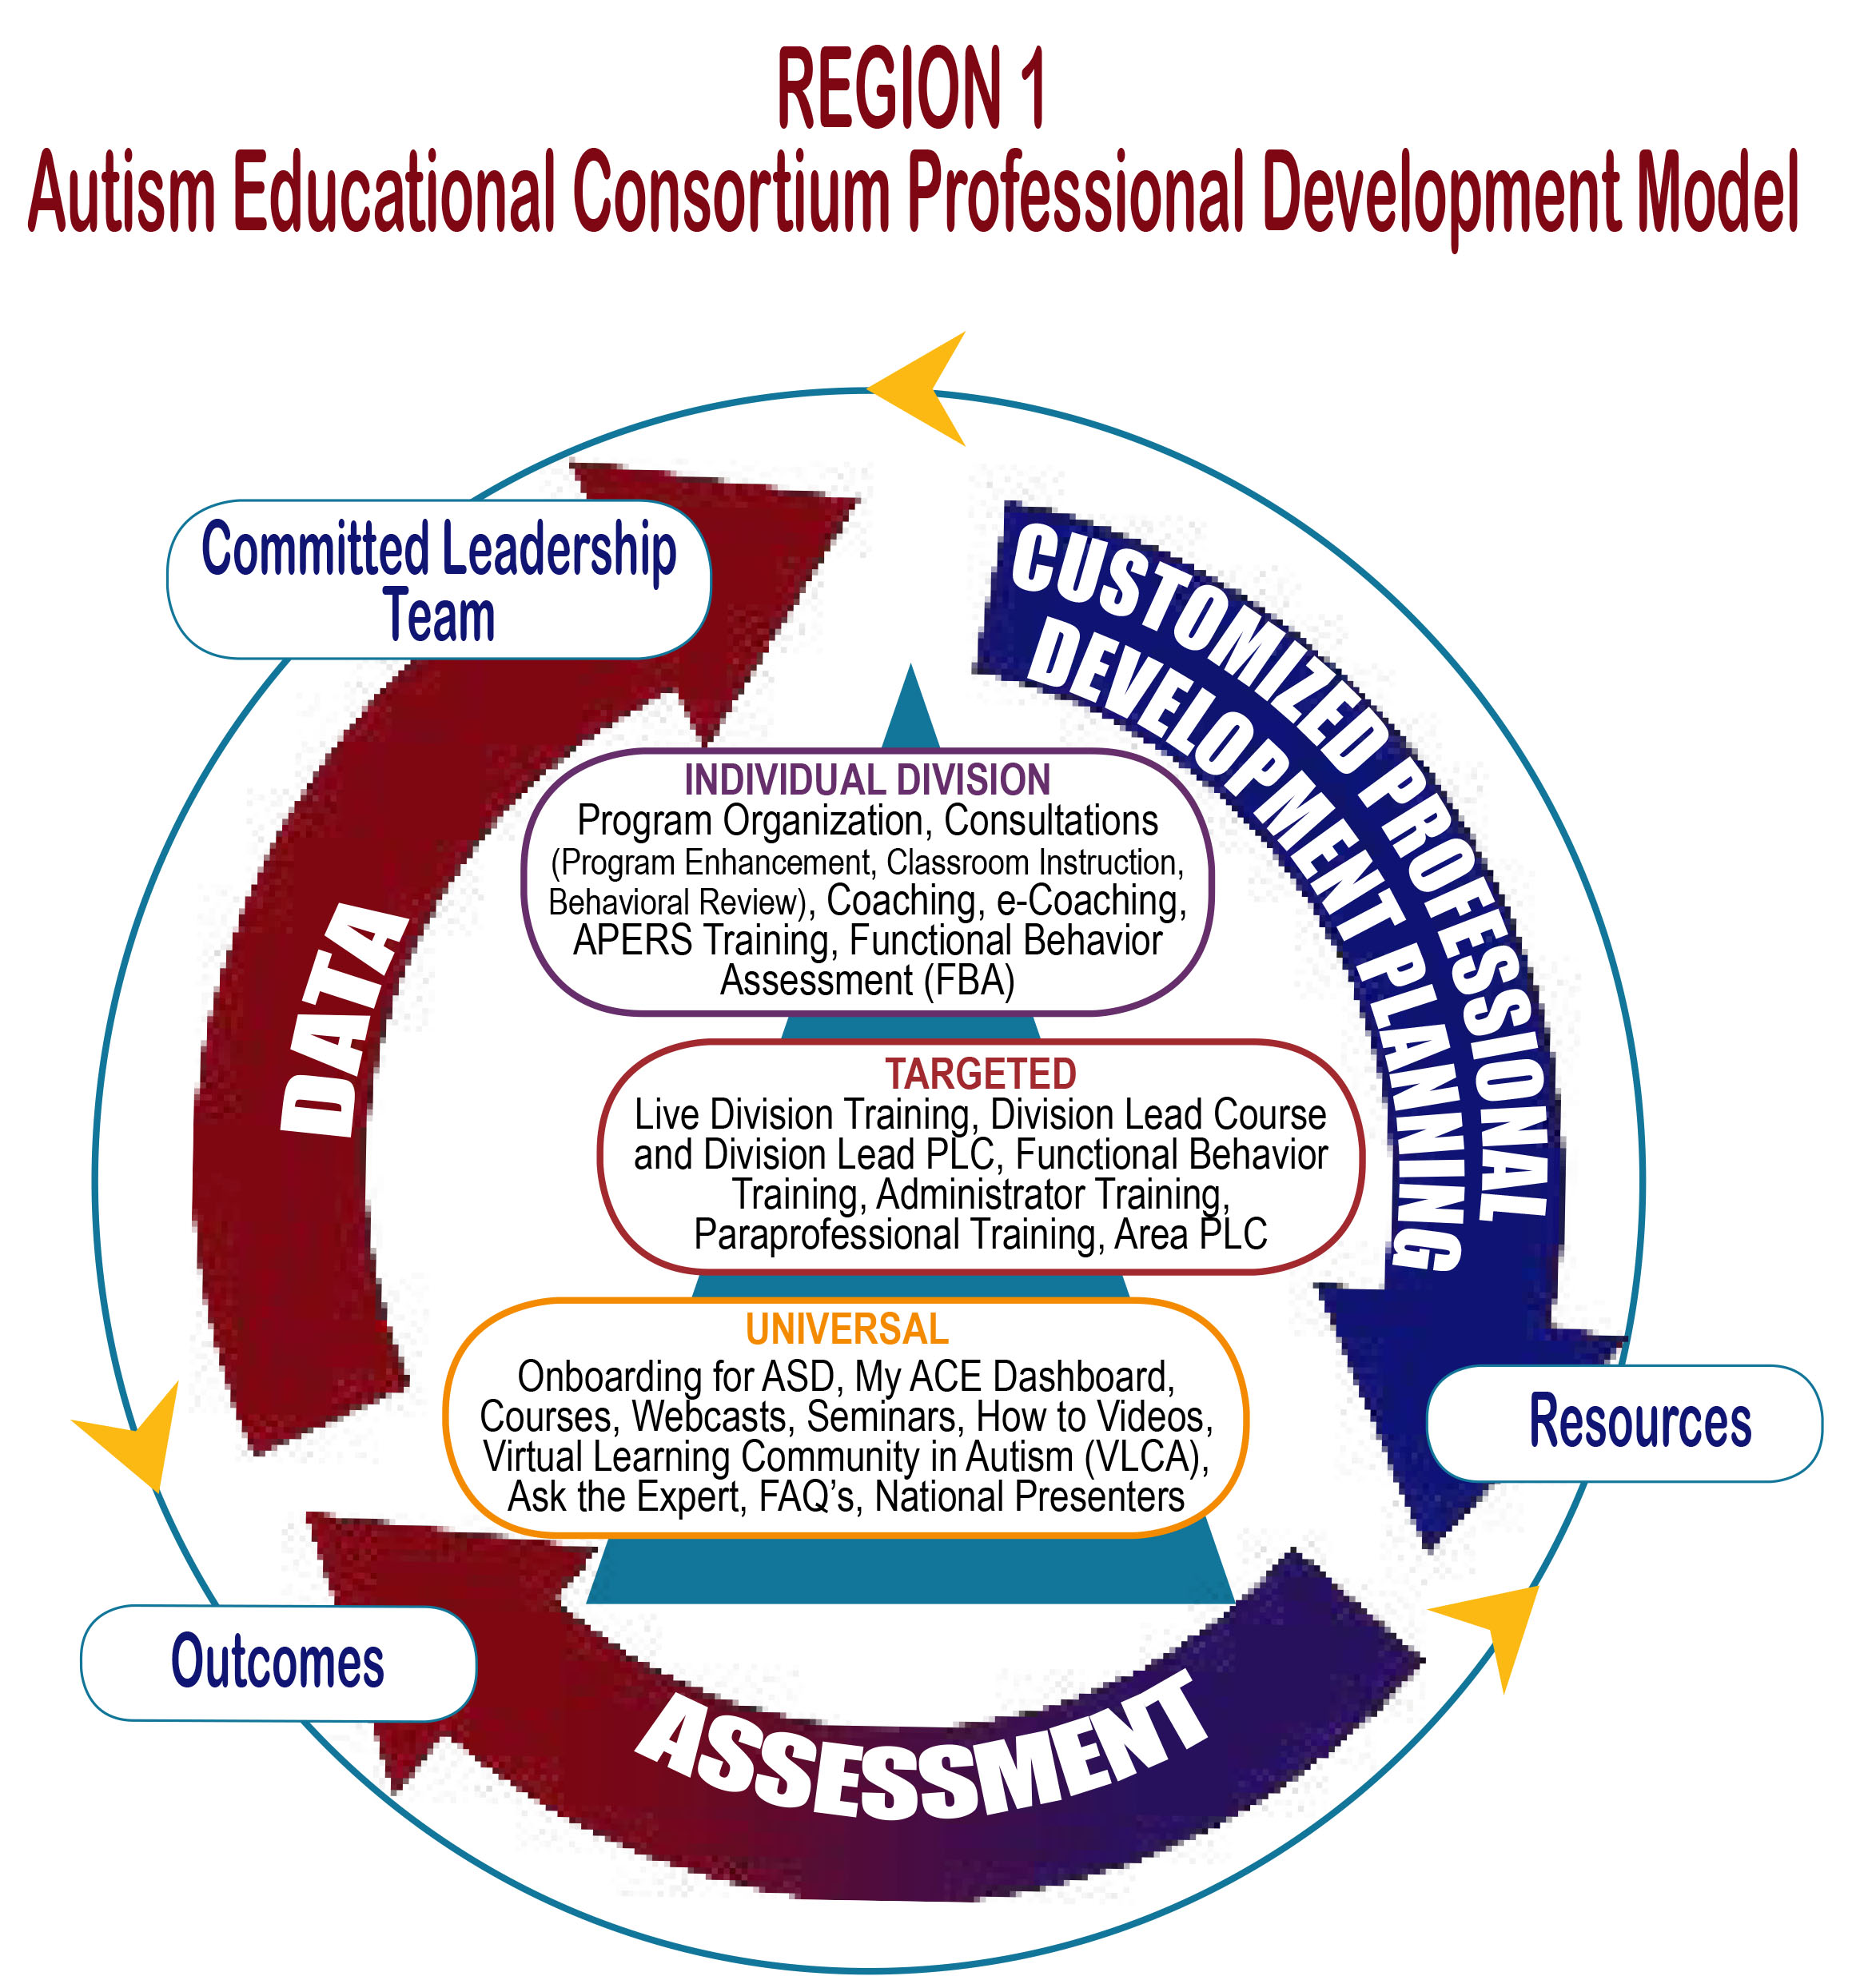 AEC Professional Development model